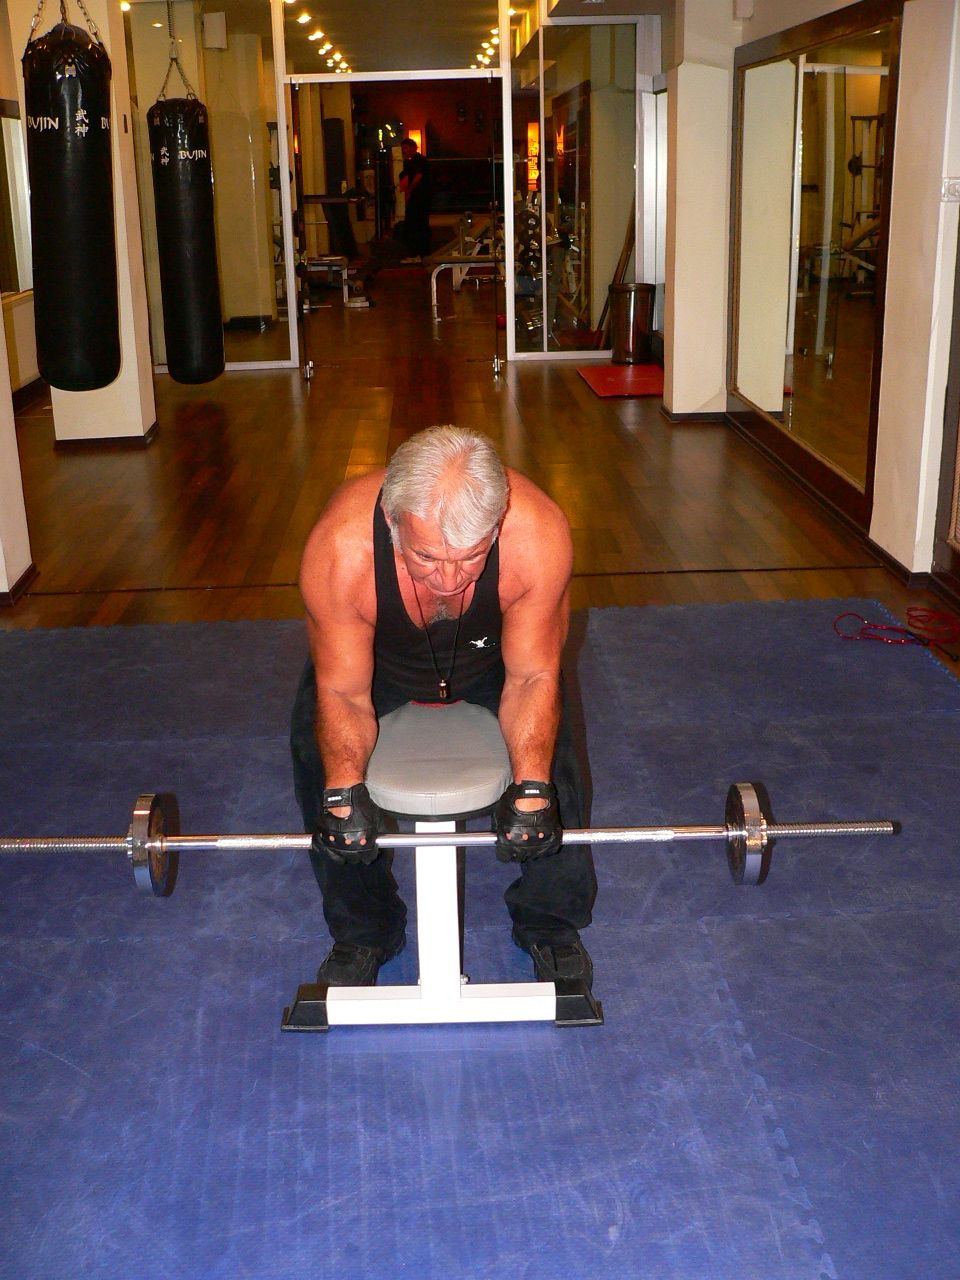 Seated Barbell Reverse Wrist Curl On The Bench